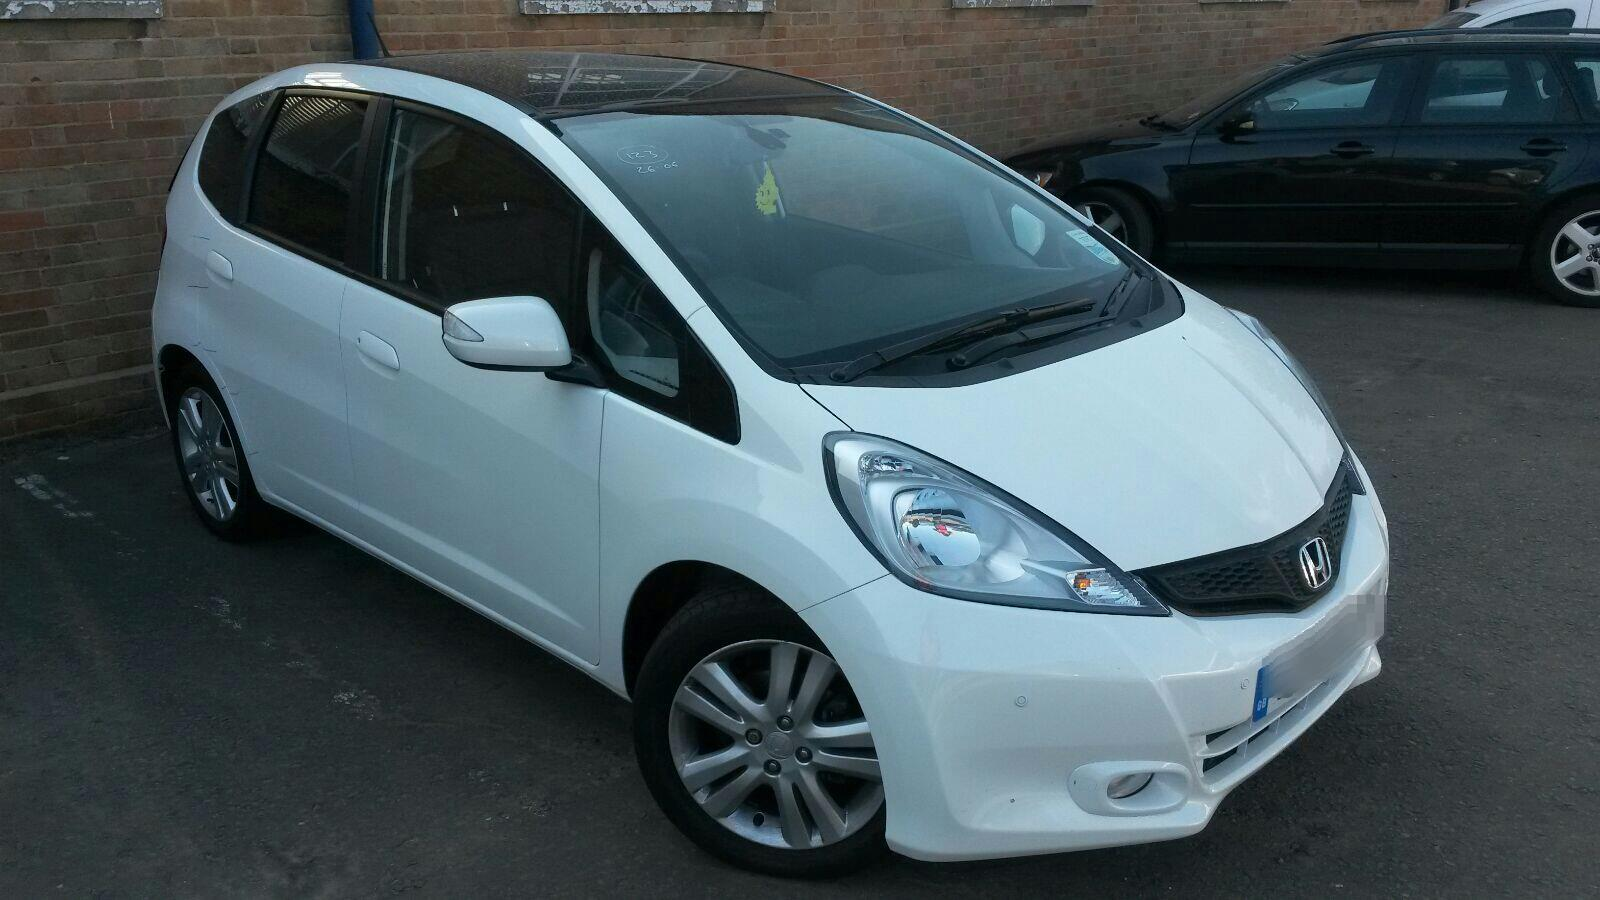 Image for a 2014 Honda Jazz 1.3 Petrol L13Z1 Engine